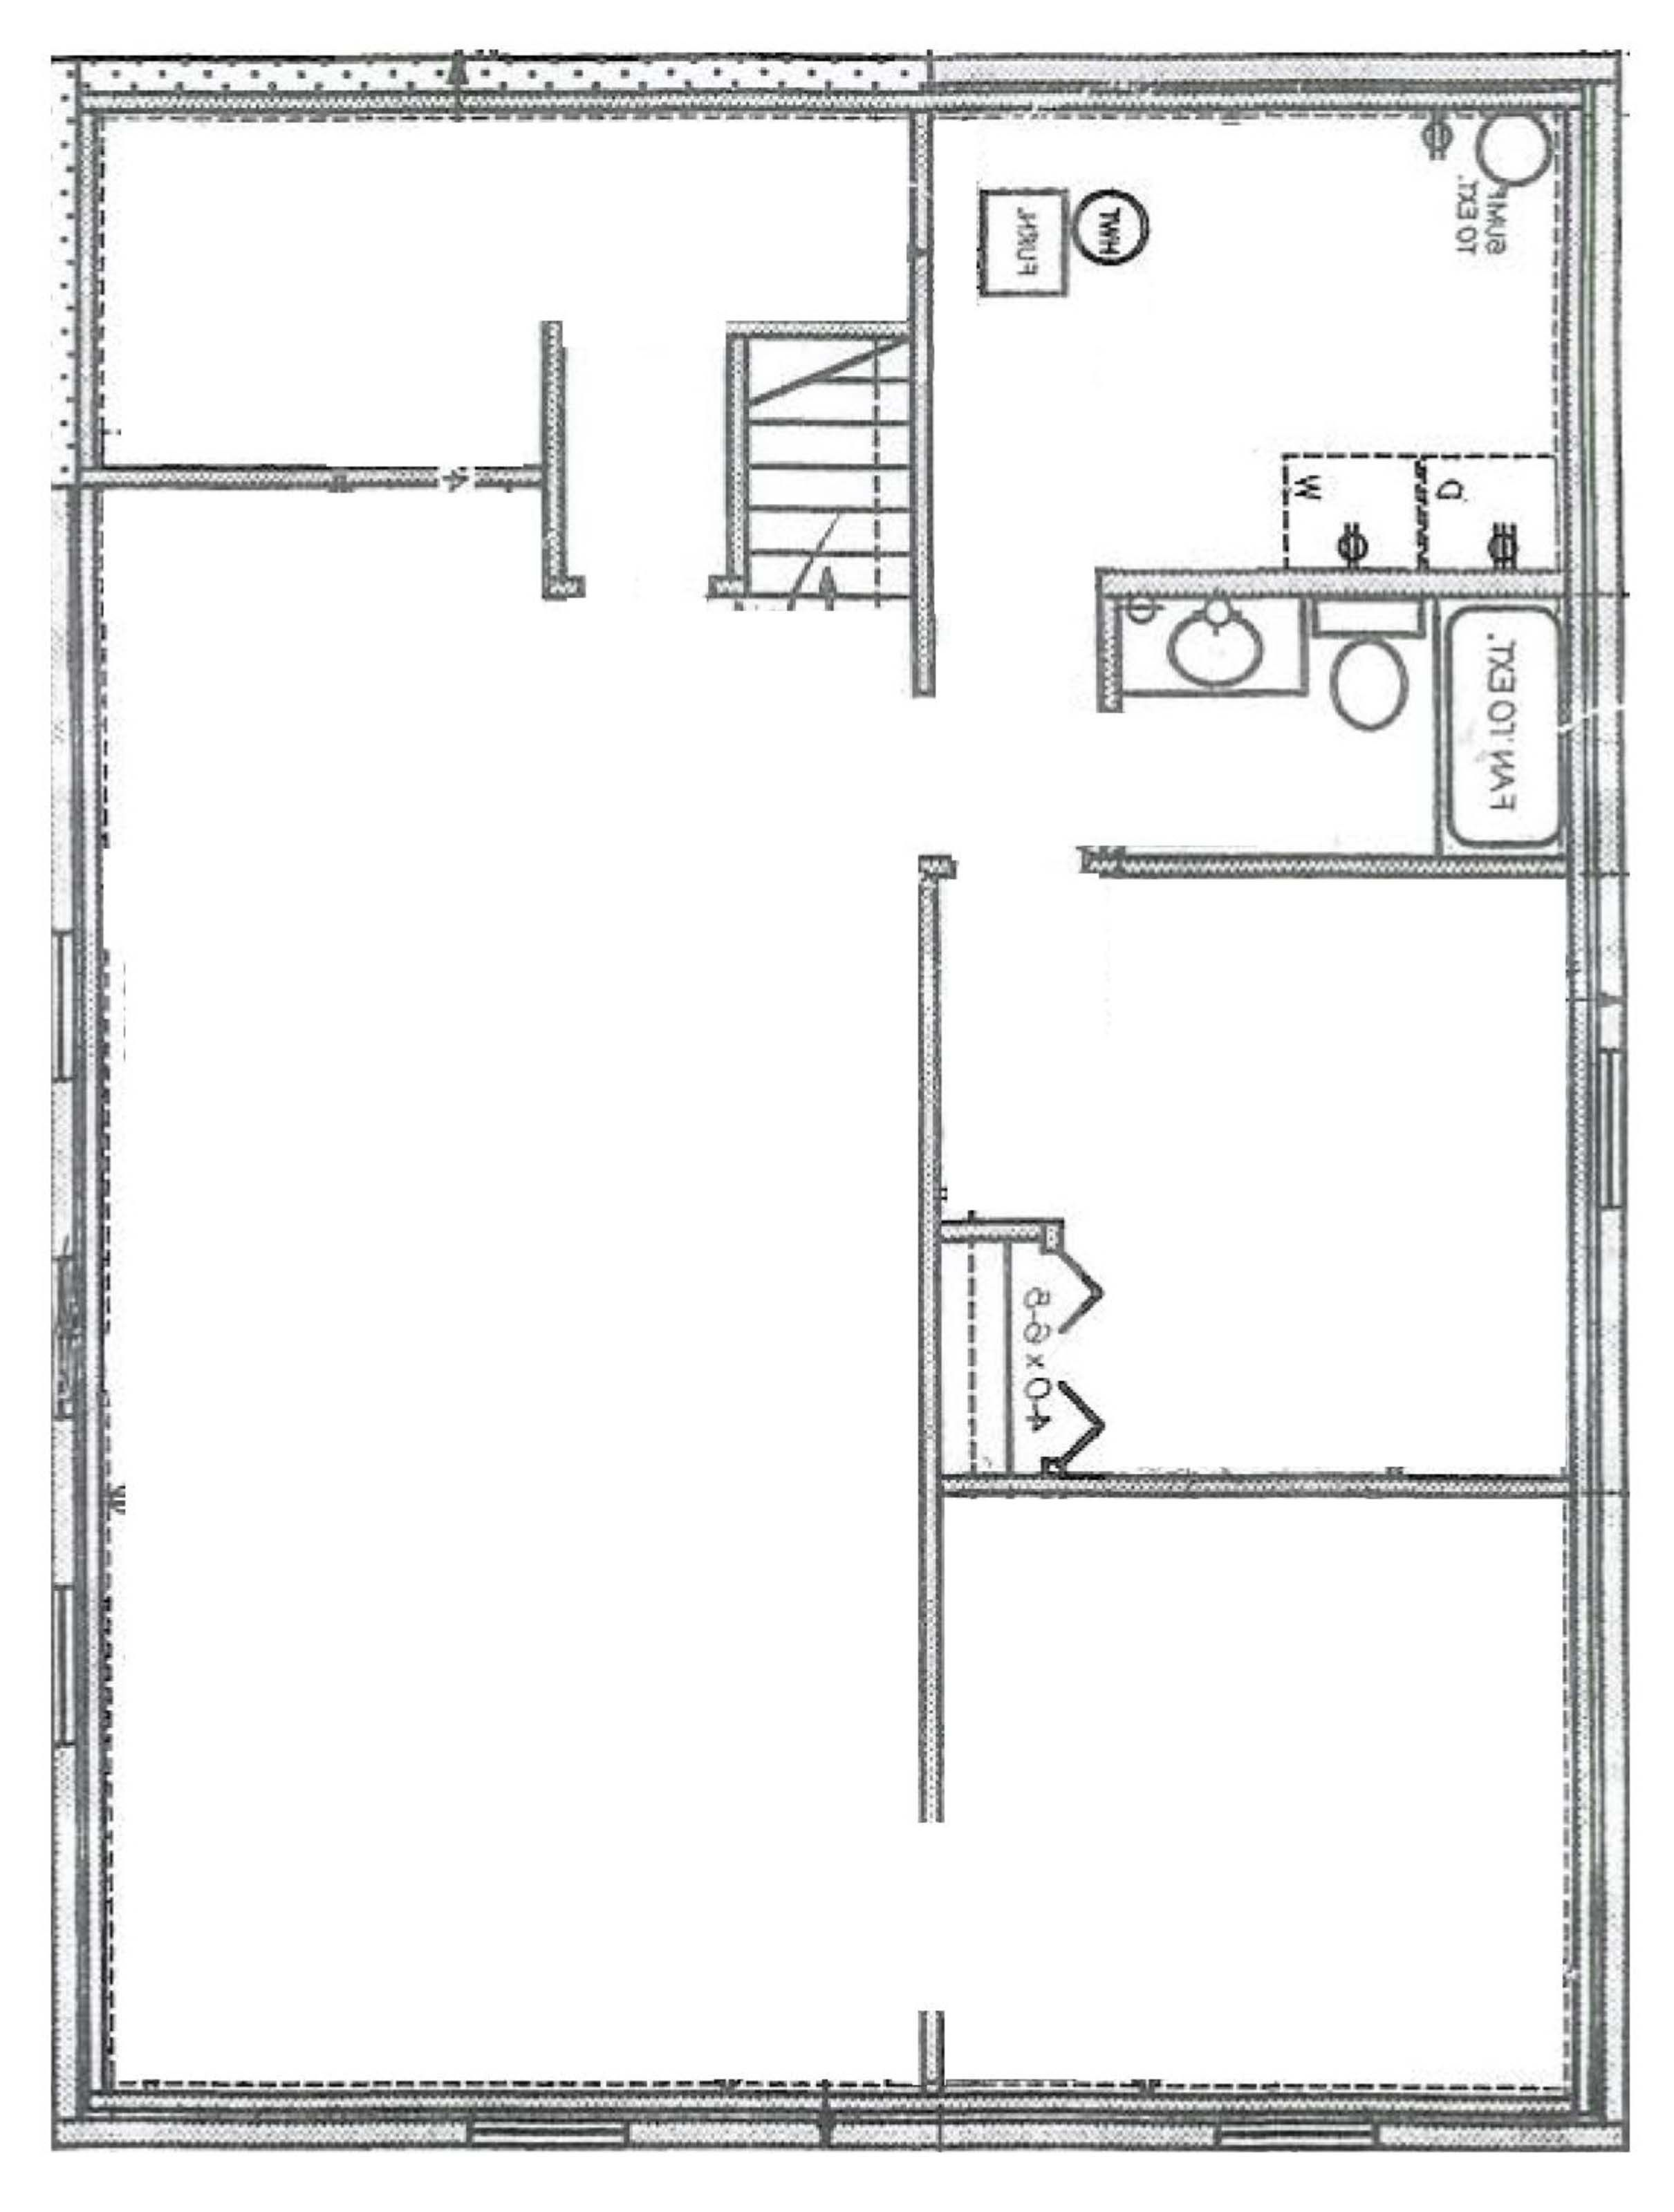 Basement Layout Basement Layout Floor Plan Layout Bedroom Floor Plans